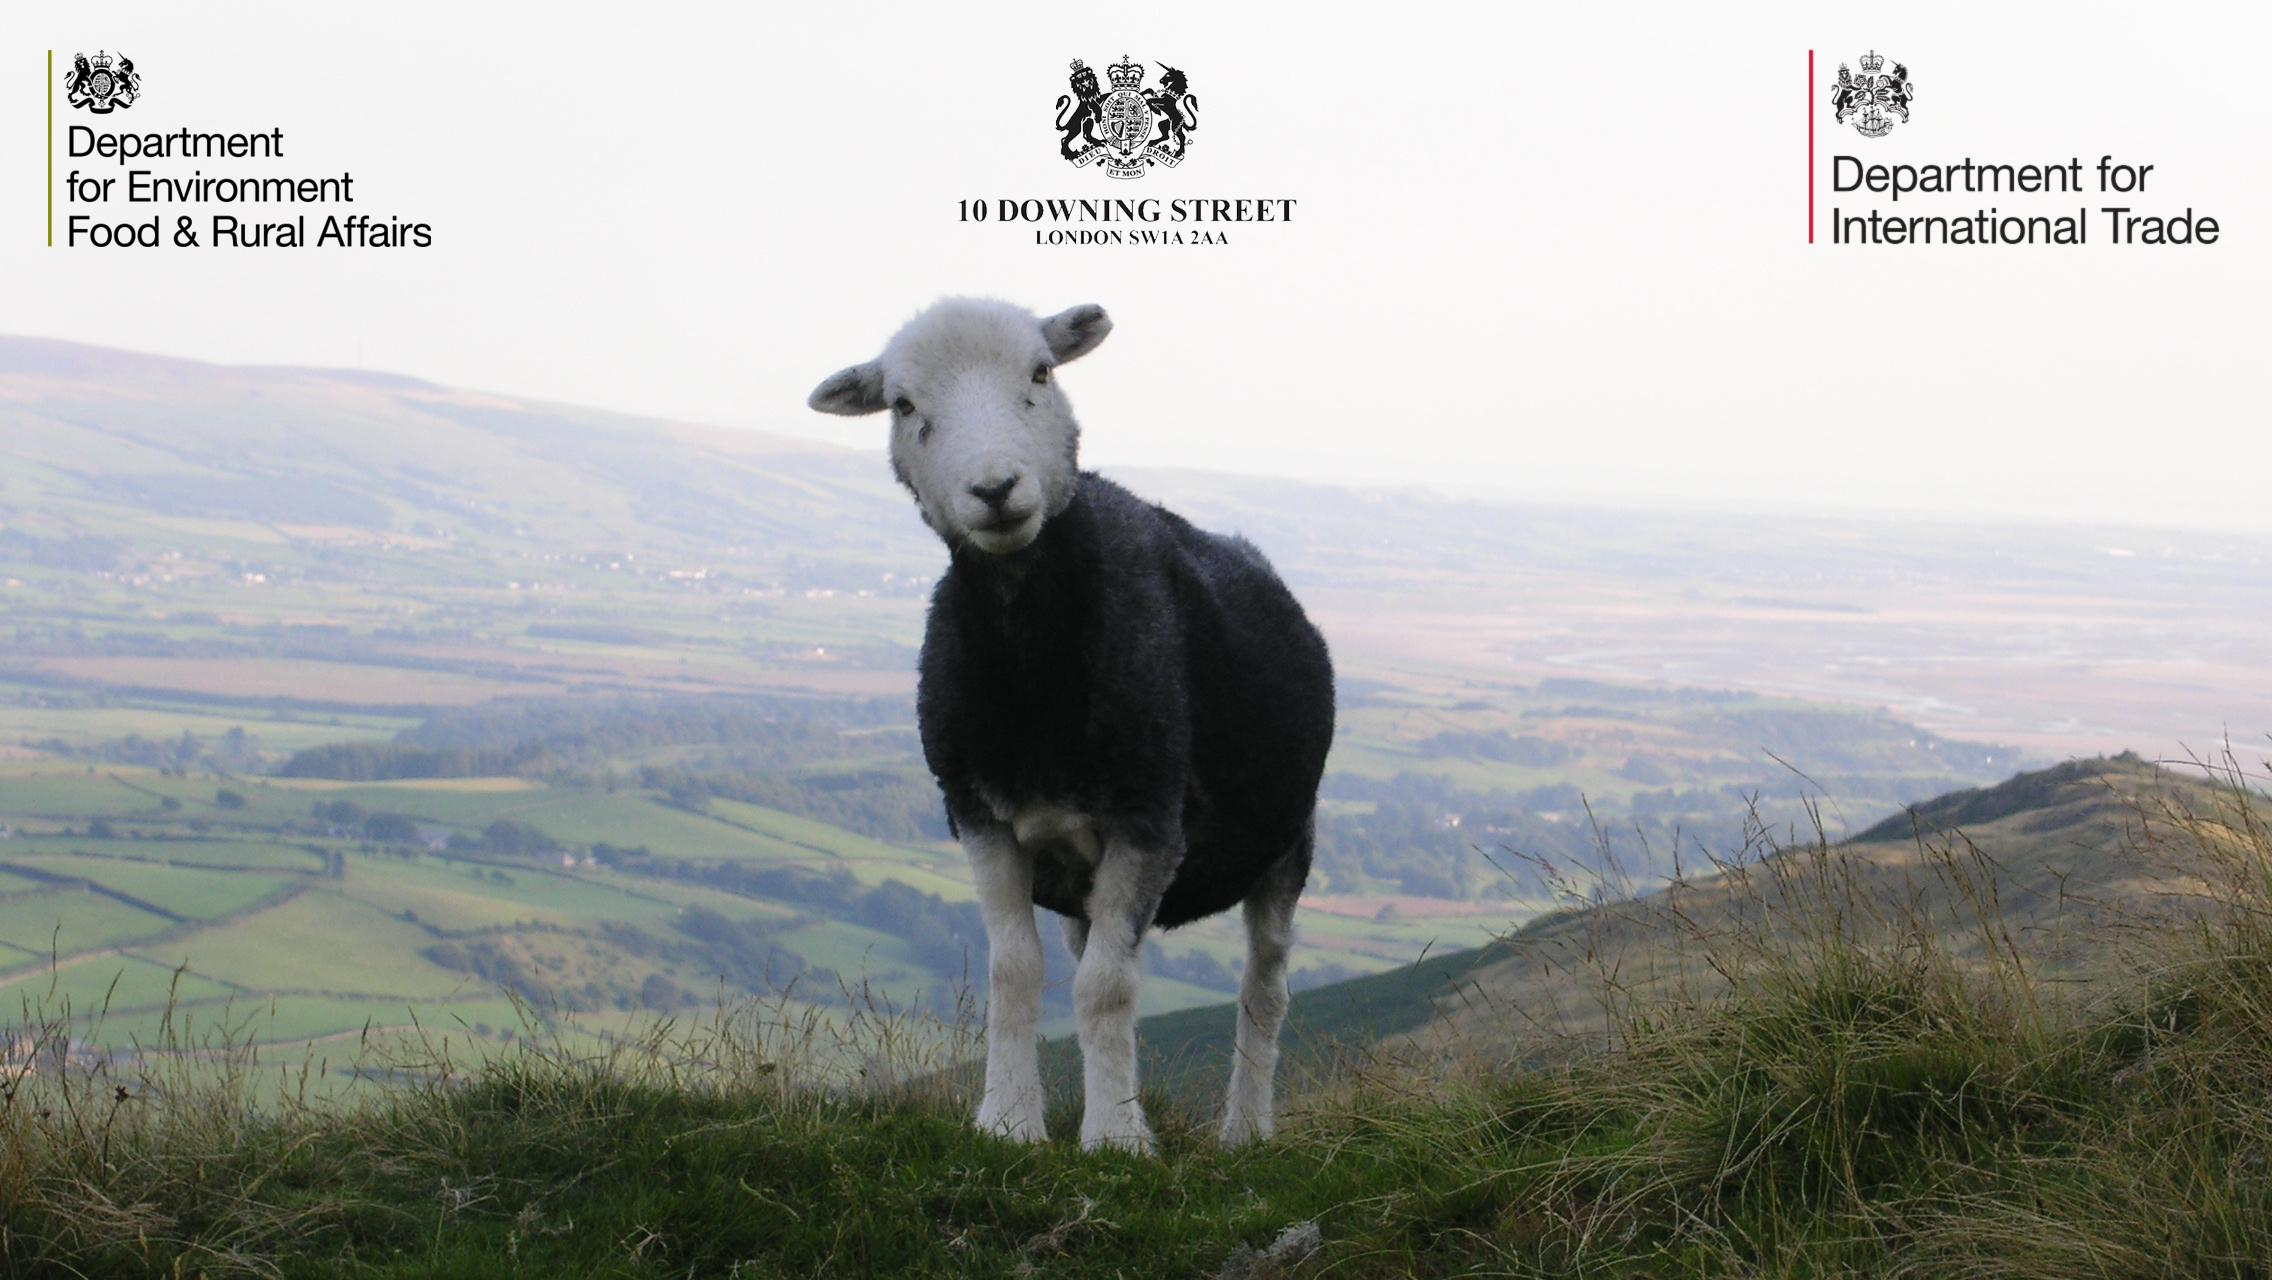 Sheep on a hill with gov logos